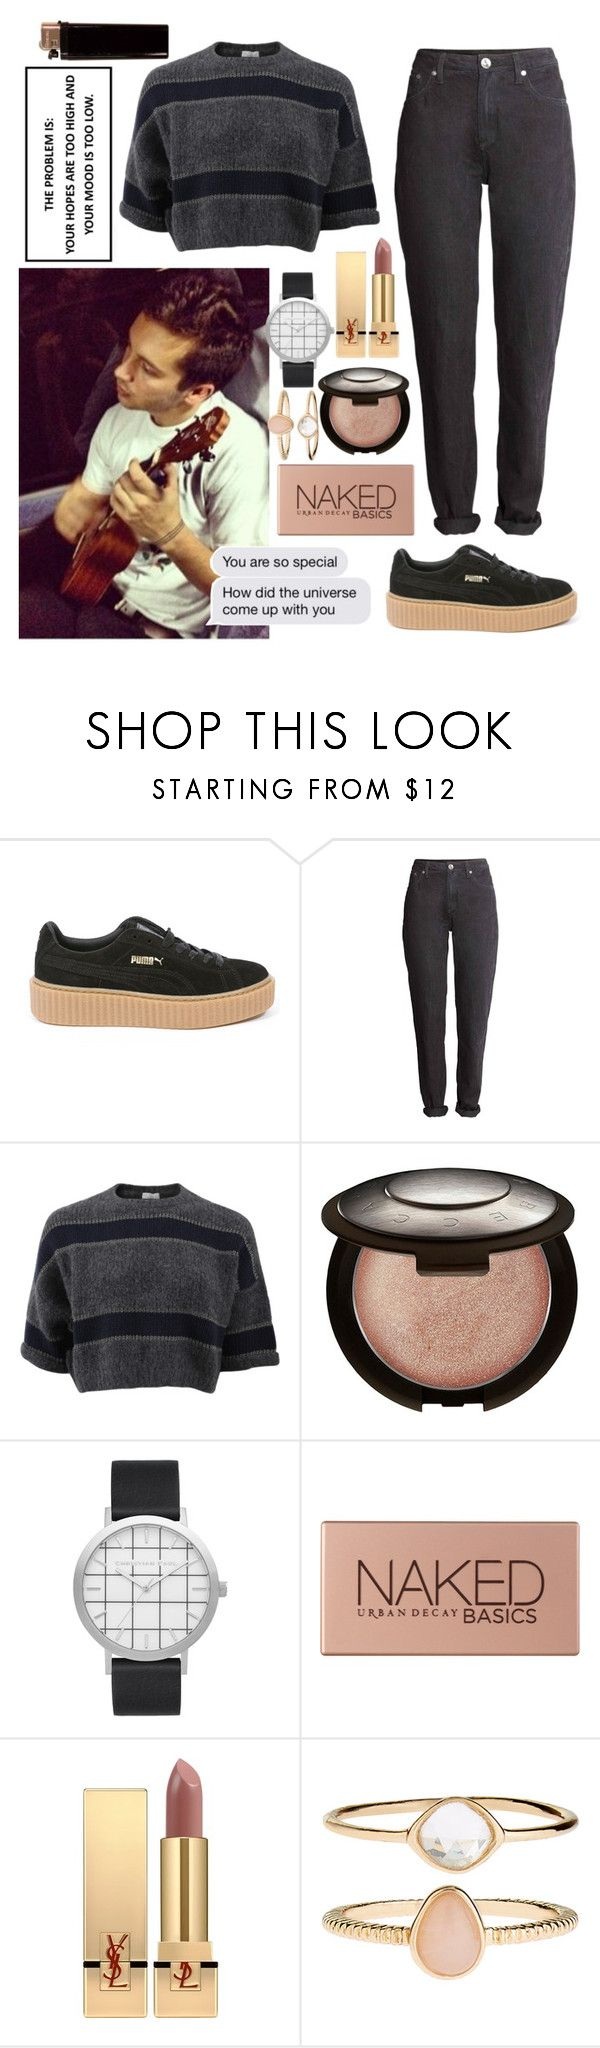 """♡ concert with Tyler ♡"" by queensof ❤ liked on Polyvore featuring Puma, Brunello Cucinelli, Becca, Elwood, Urban Decay, Yves Saint Laurent, Accessorize, Pink, black and tyler"